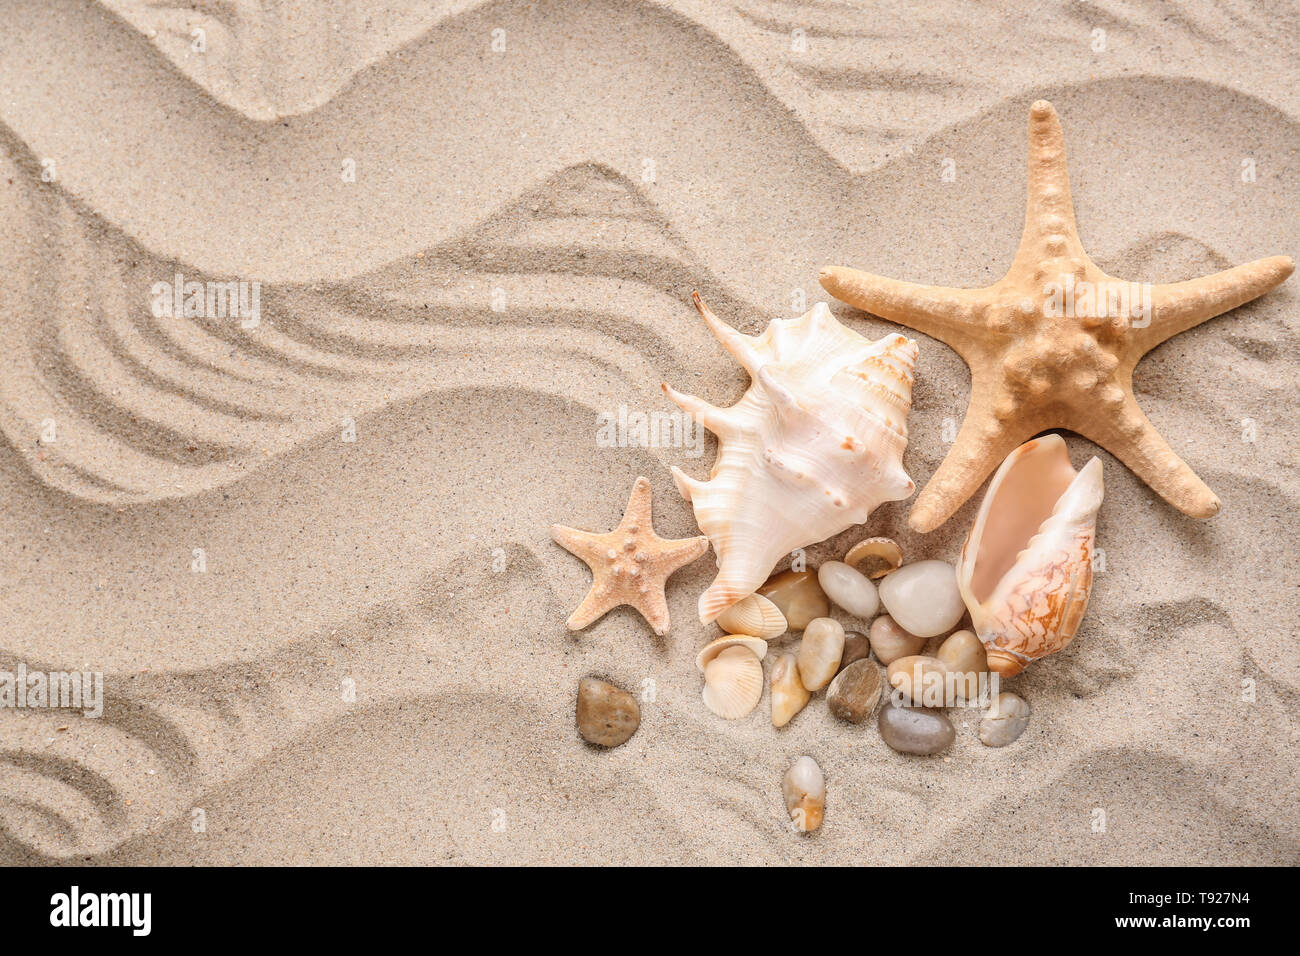 Different sea shells and starfishes on sand - Stock Image